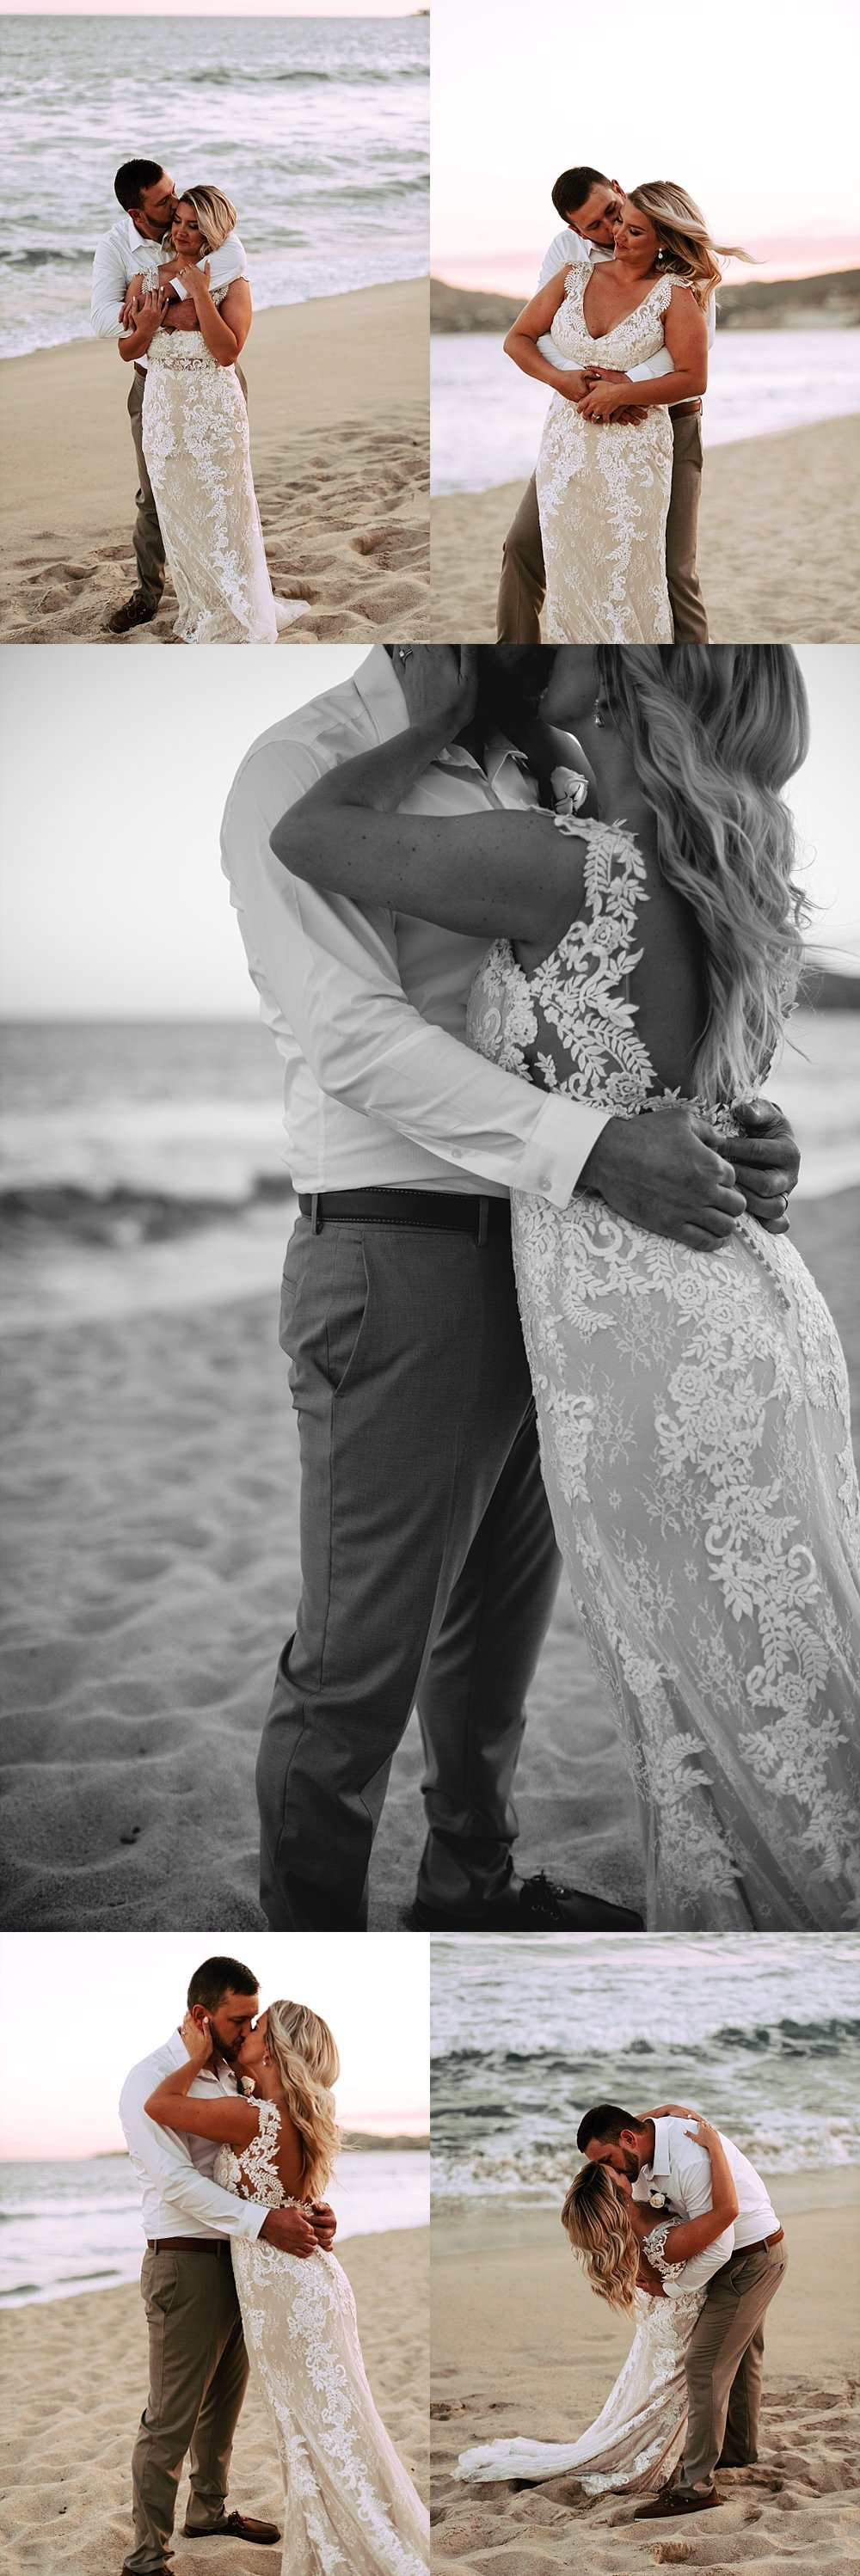 dreamy cabo beach wedding_0021.jpg